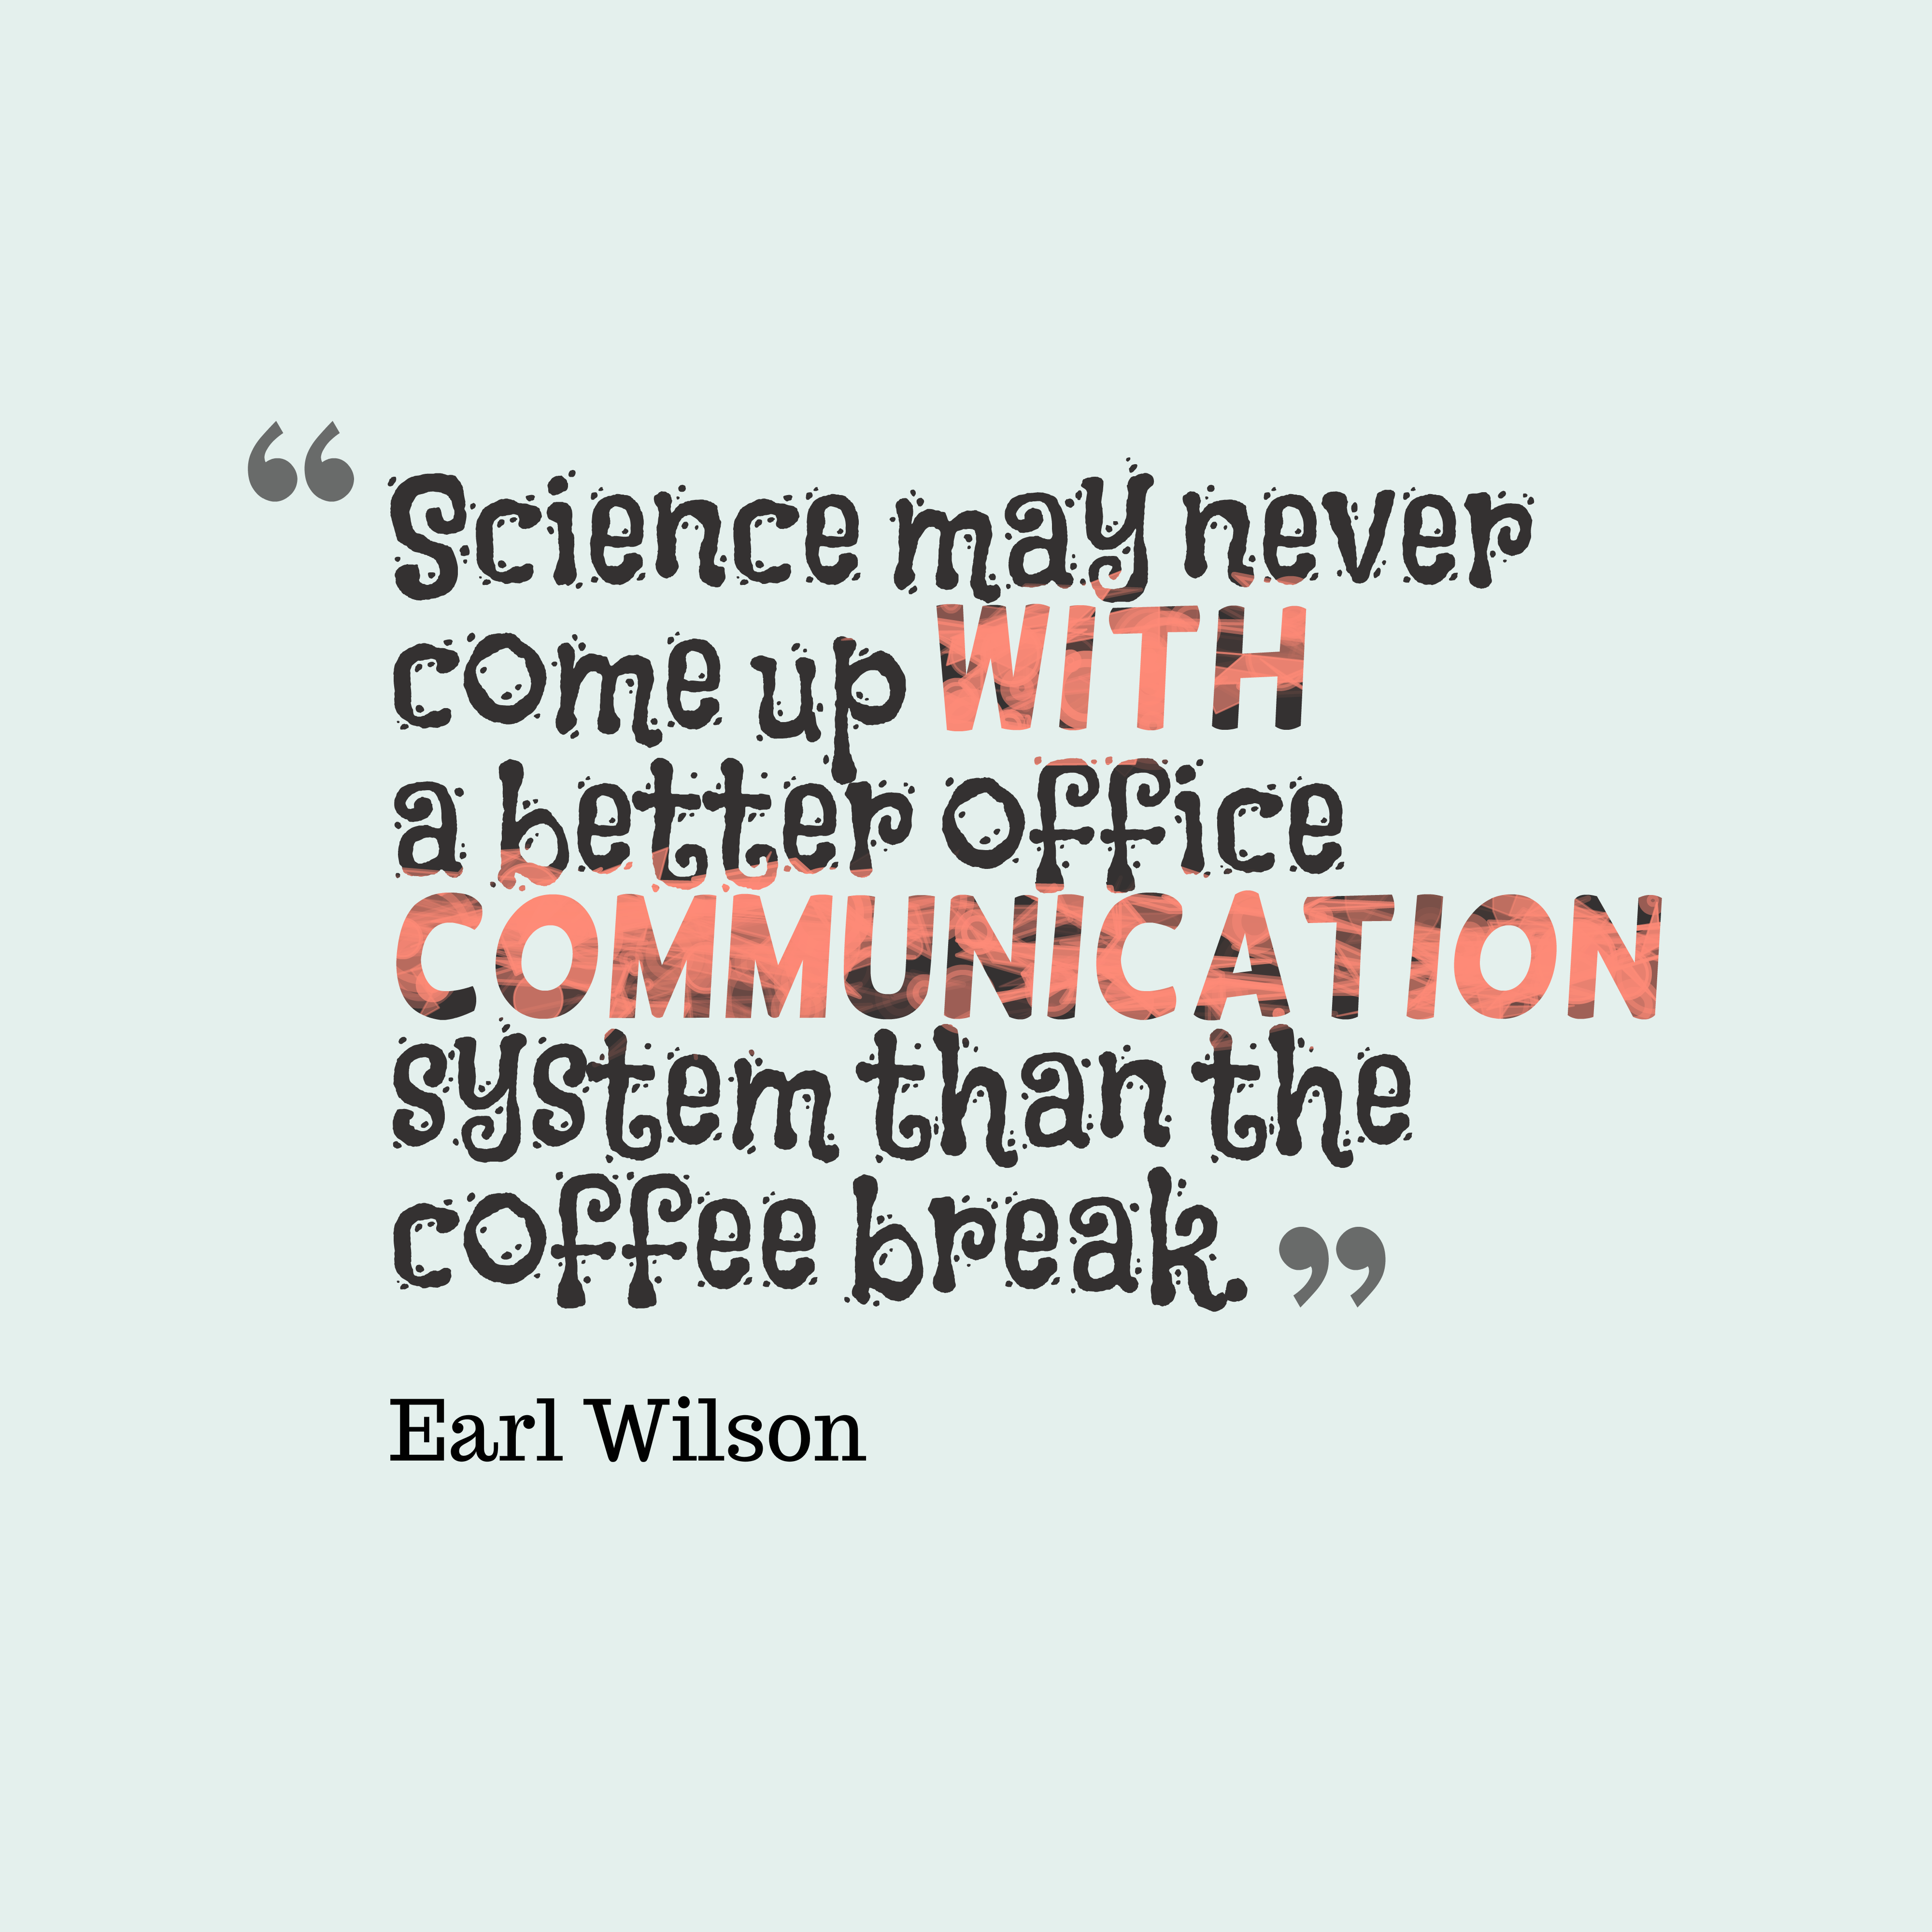 Quotes image of Science may never come up with a better office communication system than the coffee break.